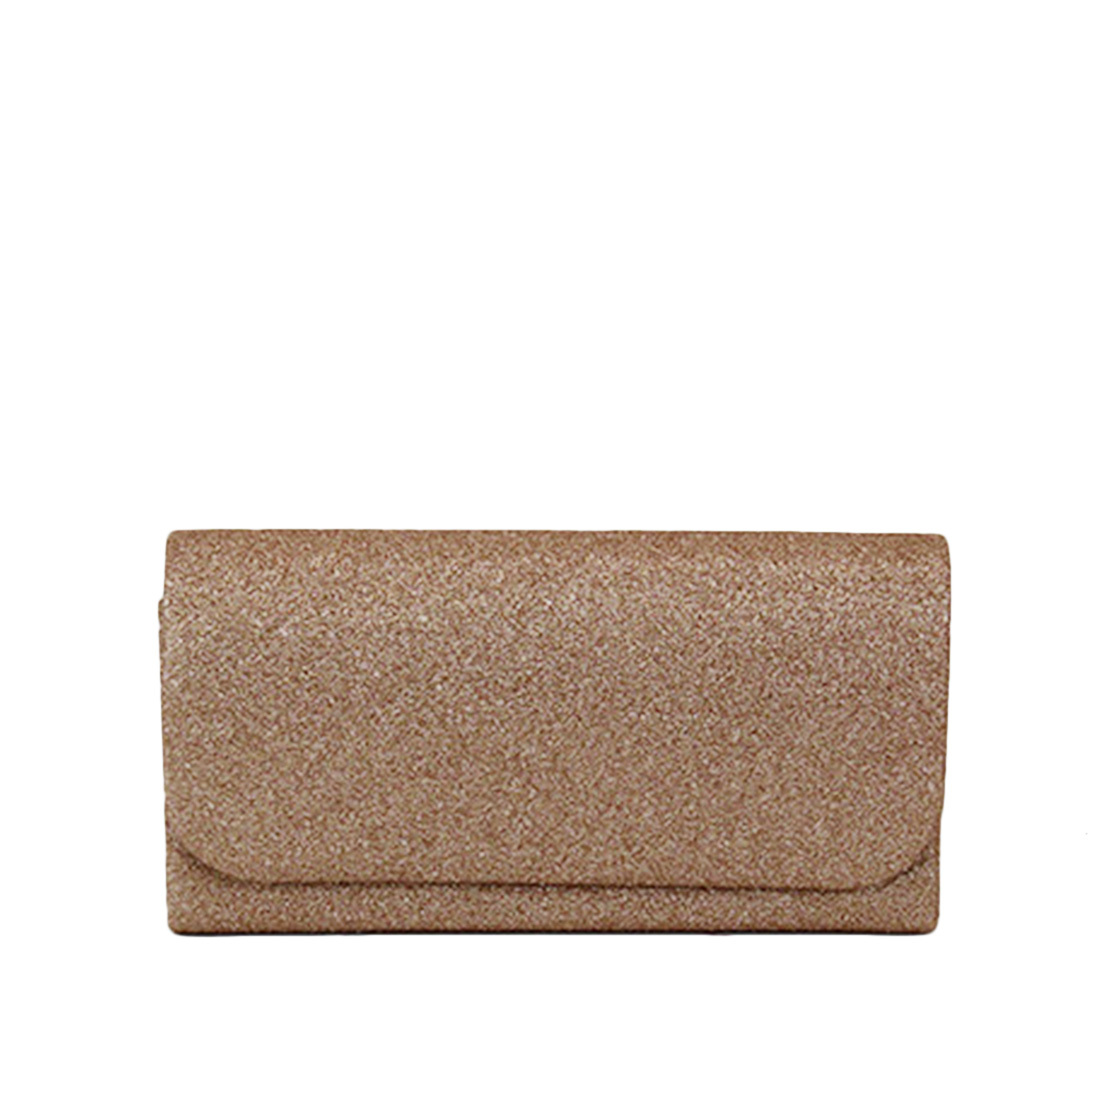 Plain casual clutch with glitters